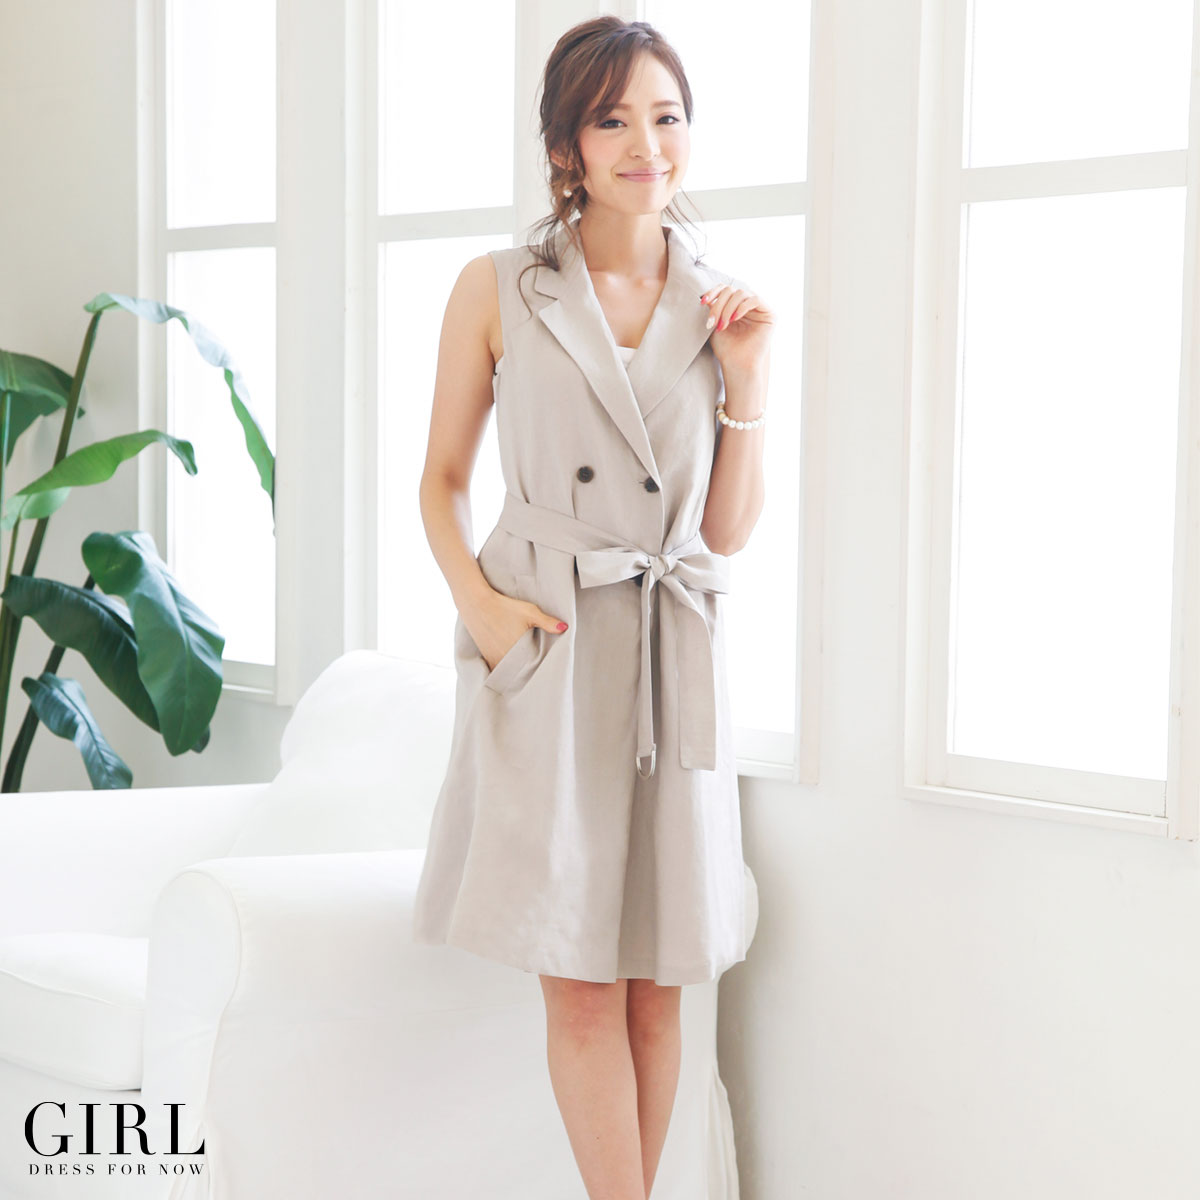 Dress shop GIRL | Rakuten Global Market: One piece wind jacket ...